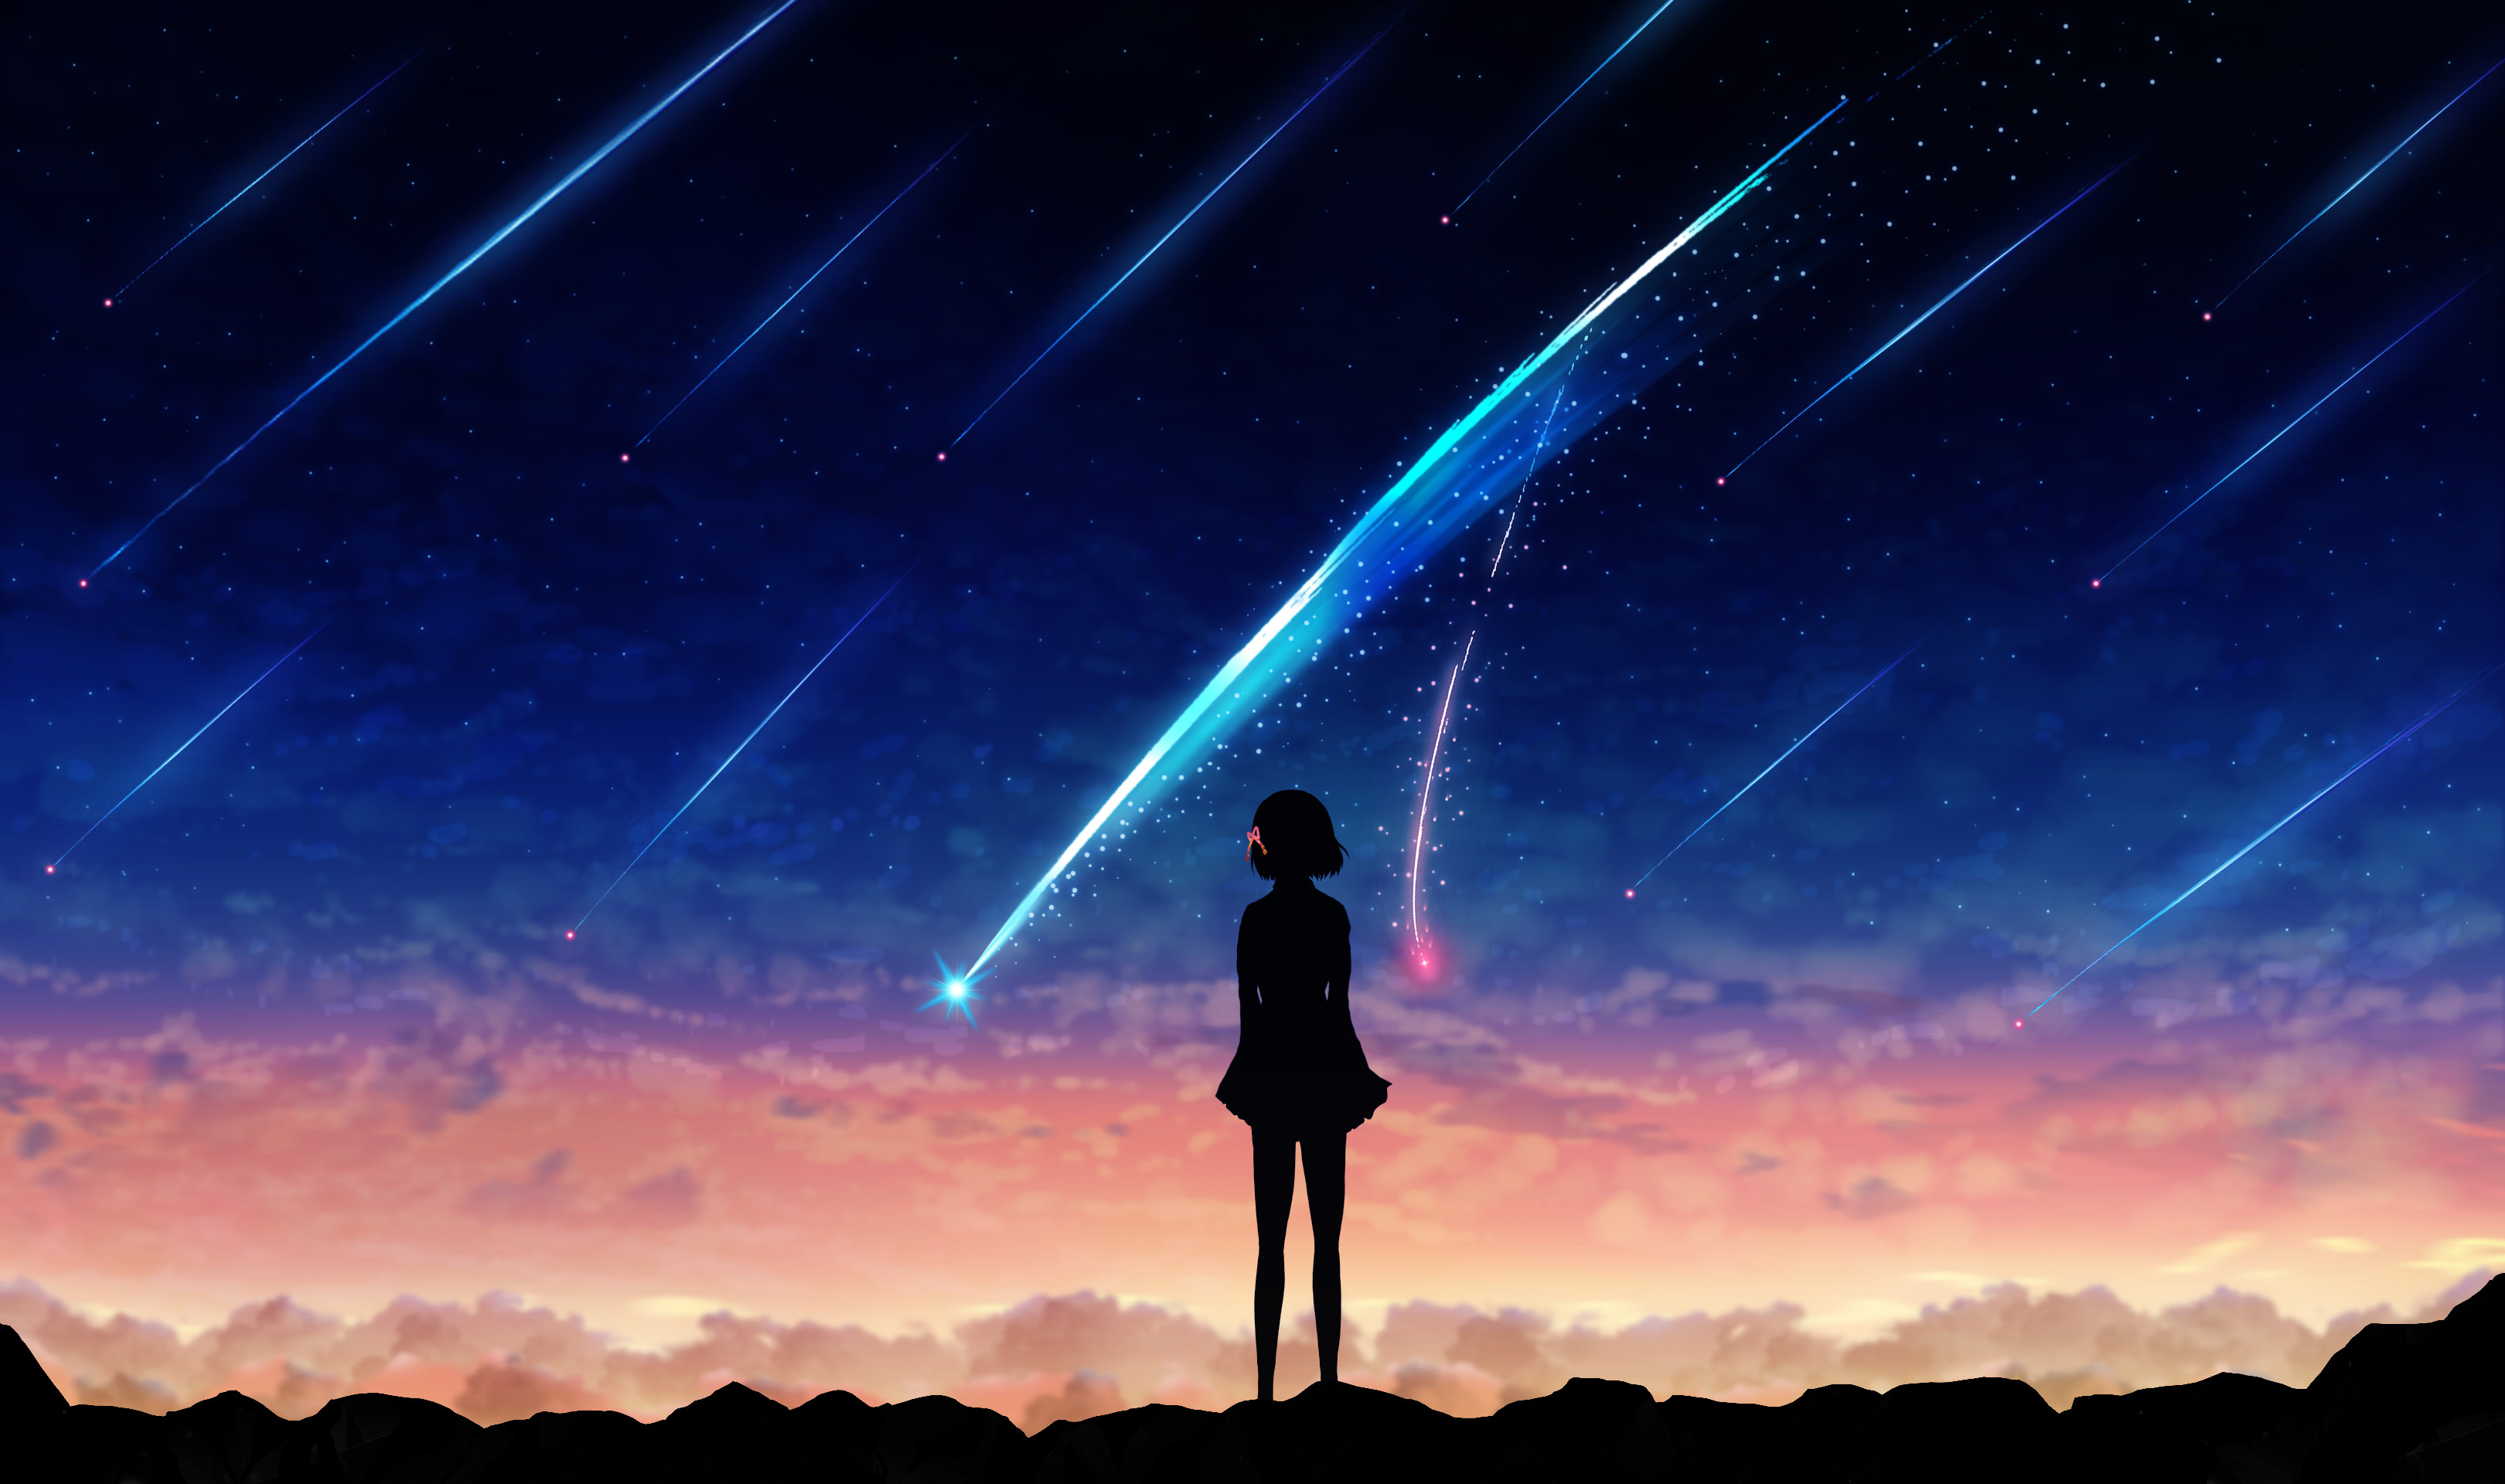 Your Name Wallpapers 78 images 3240x1920